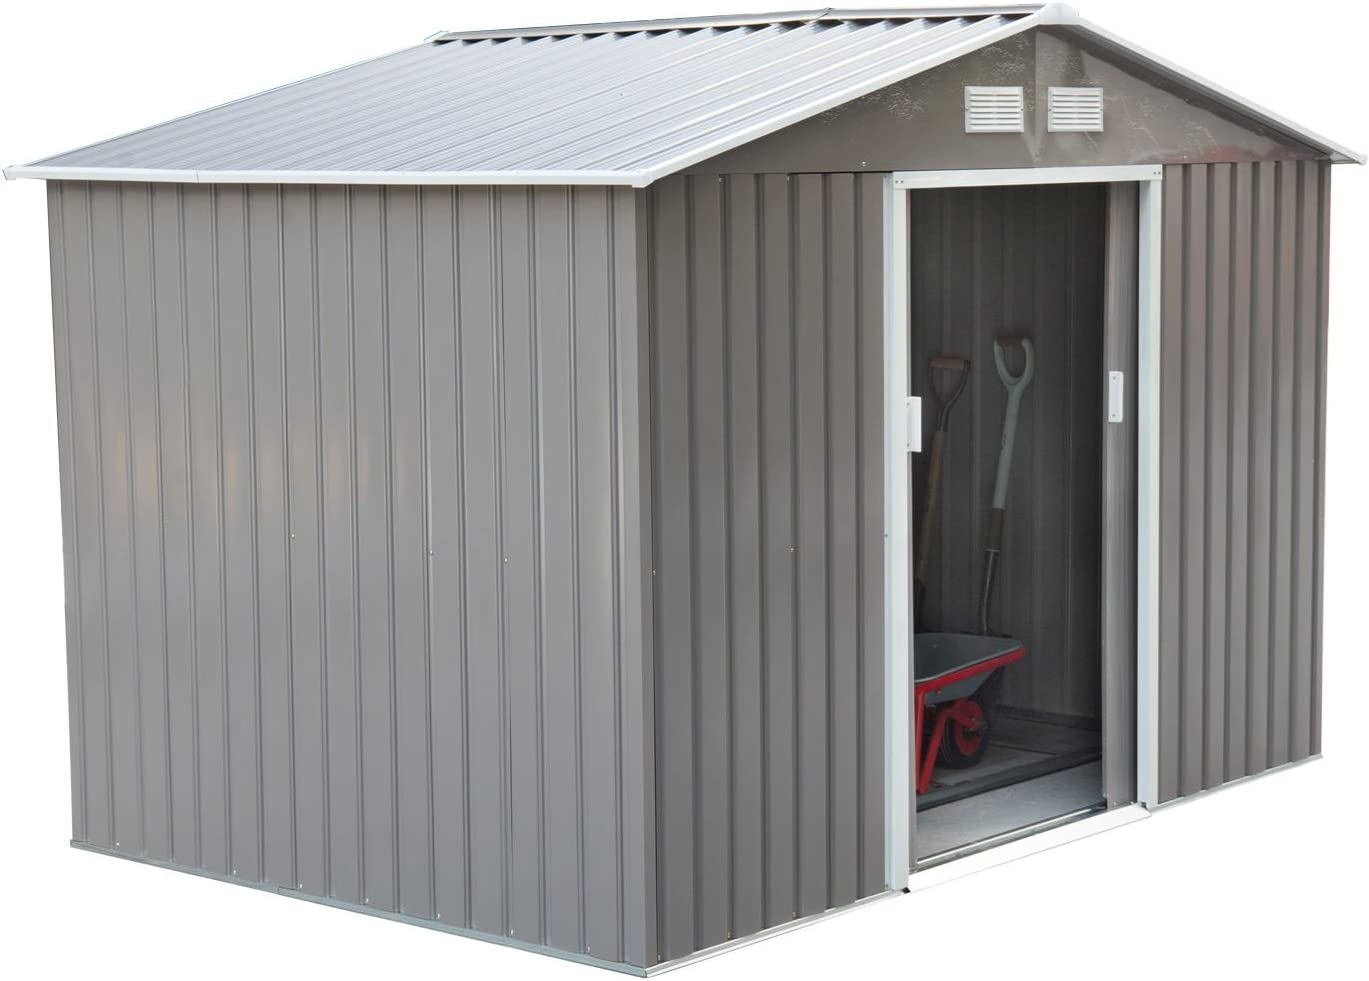 Outsunny 9' x 6' Metal Garden Shed Utility Tool Storage, Outdoor House for Backyard and Garden, Grey and White